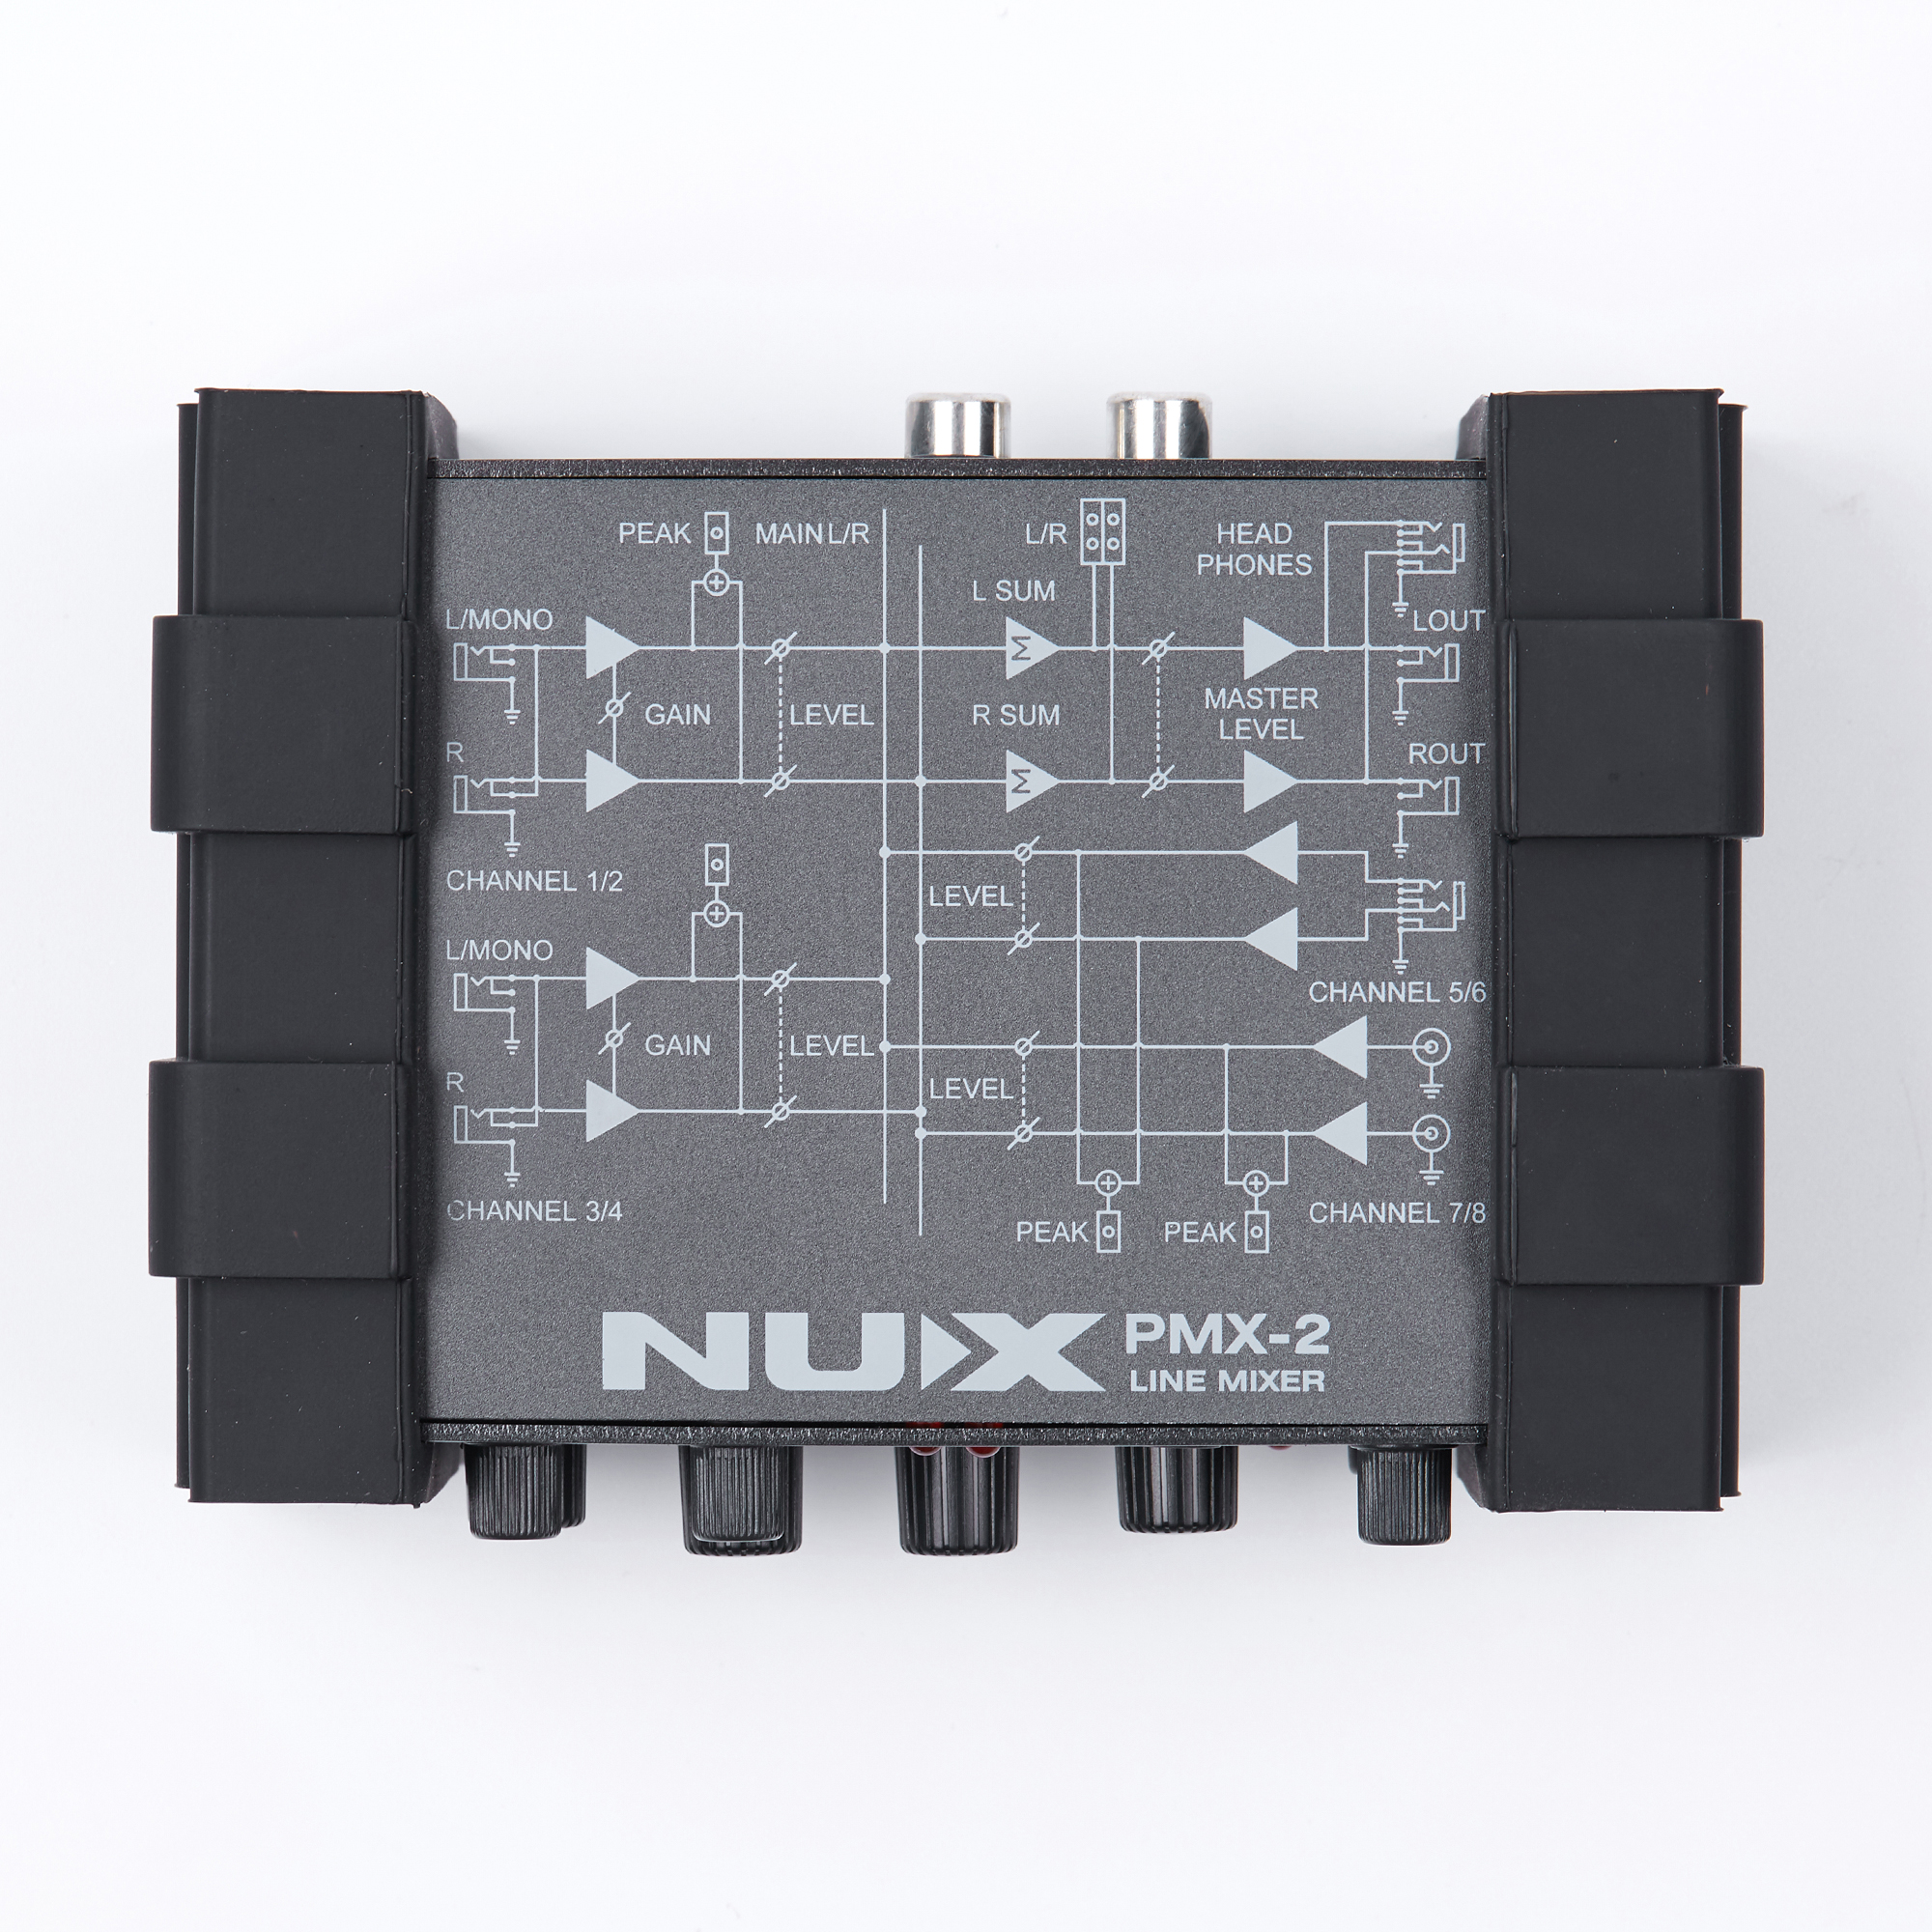 Gain Control 8 Inputs and 2 Outputs NUX PMX-2 Multi-Channel Mini Mixer 30 Musical Instruments Accessories for Guitar Bass Player термокружка anna